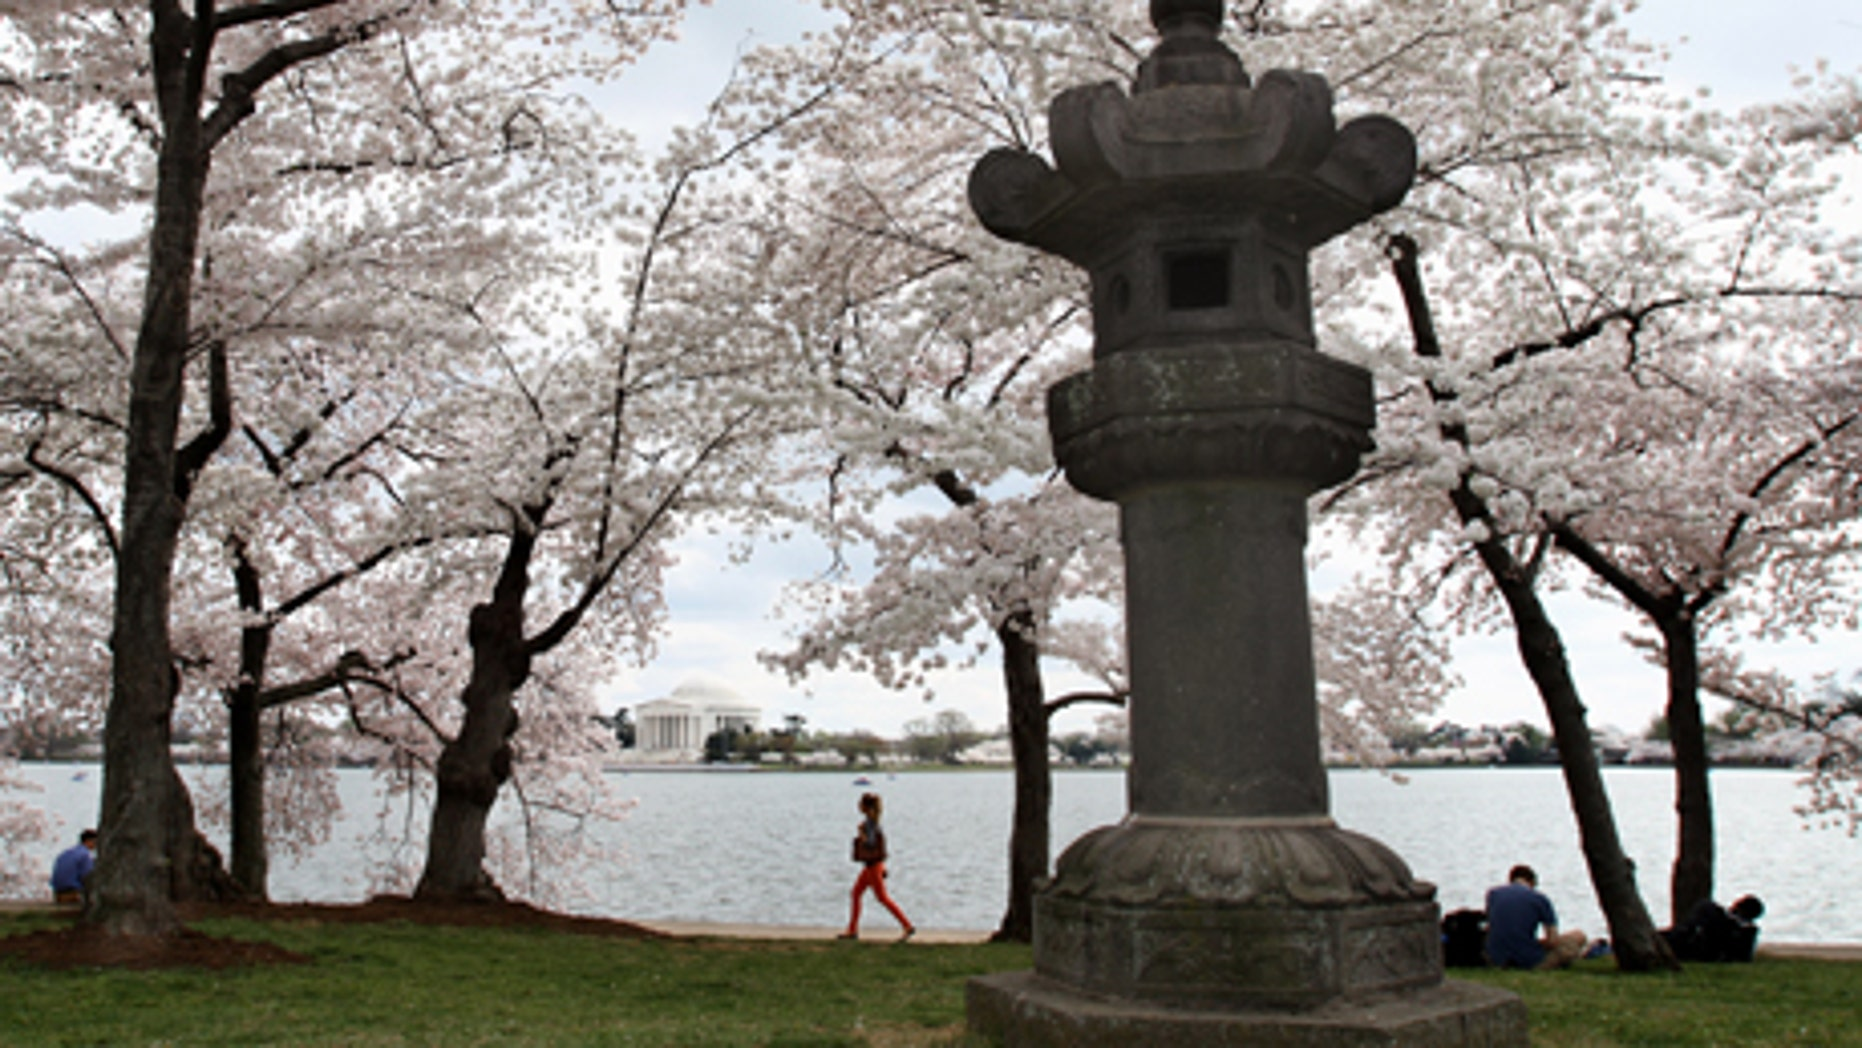 March 19, 2012: Some of the oldest cherry blossom trees can be found in the area near this traditional Japanese stone lantern along the tidal basin in Washington.